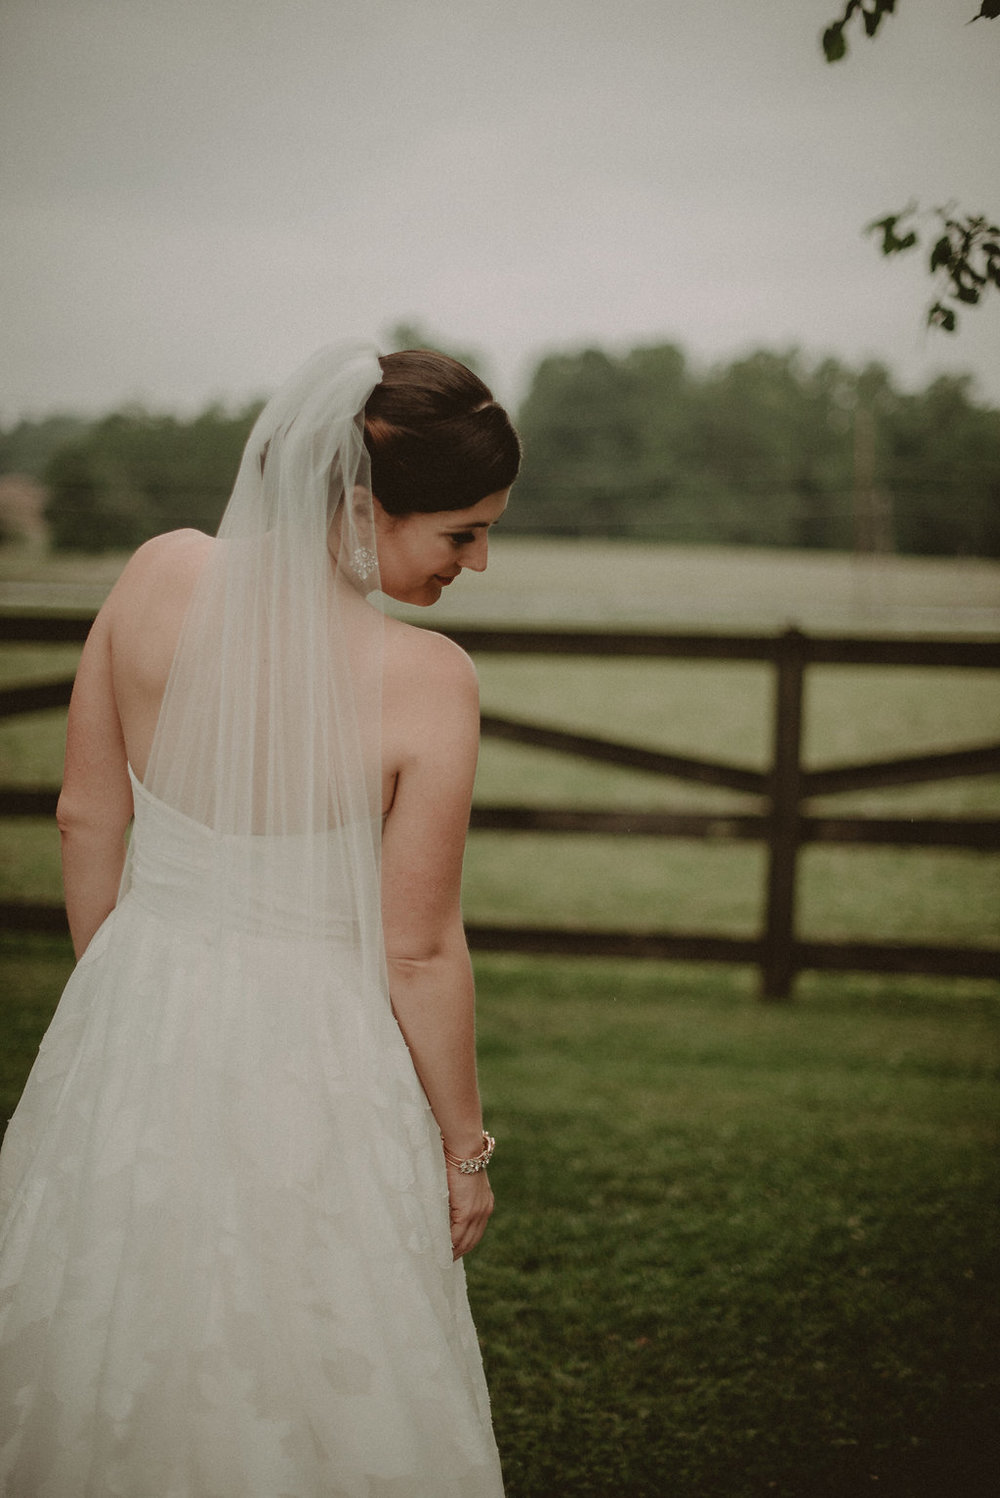 Bride as seen from behind